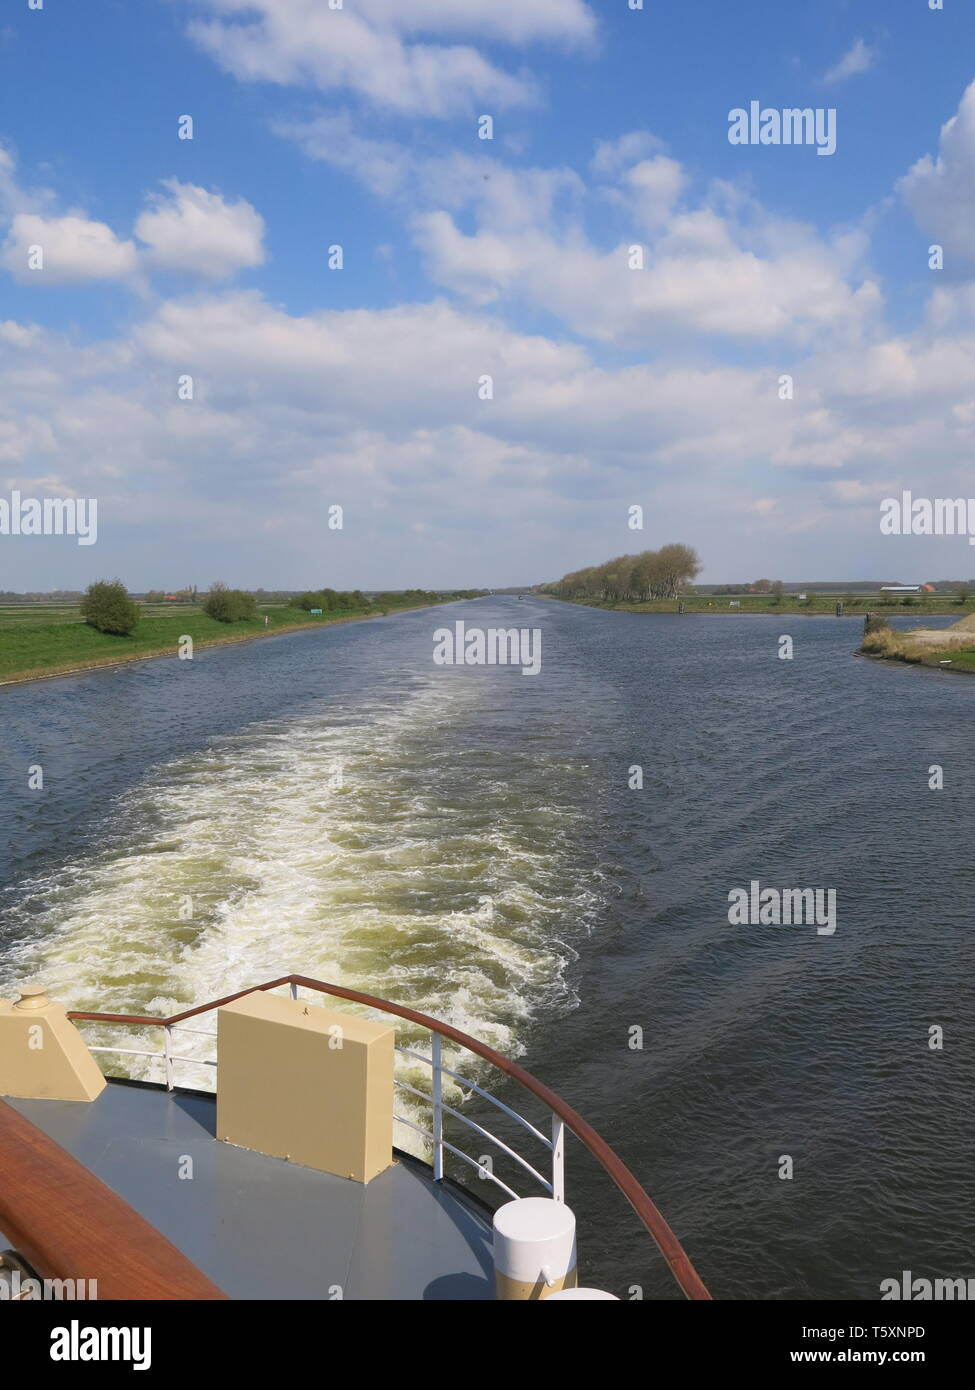 Cruising the waterways of the Netherlands is a peaceful way to explore the wide, flat canal and river landscape. - Stock Image